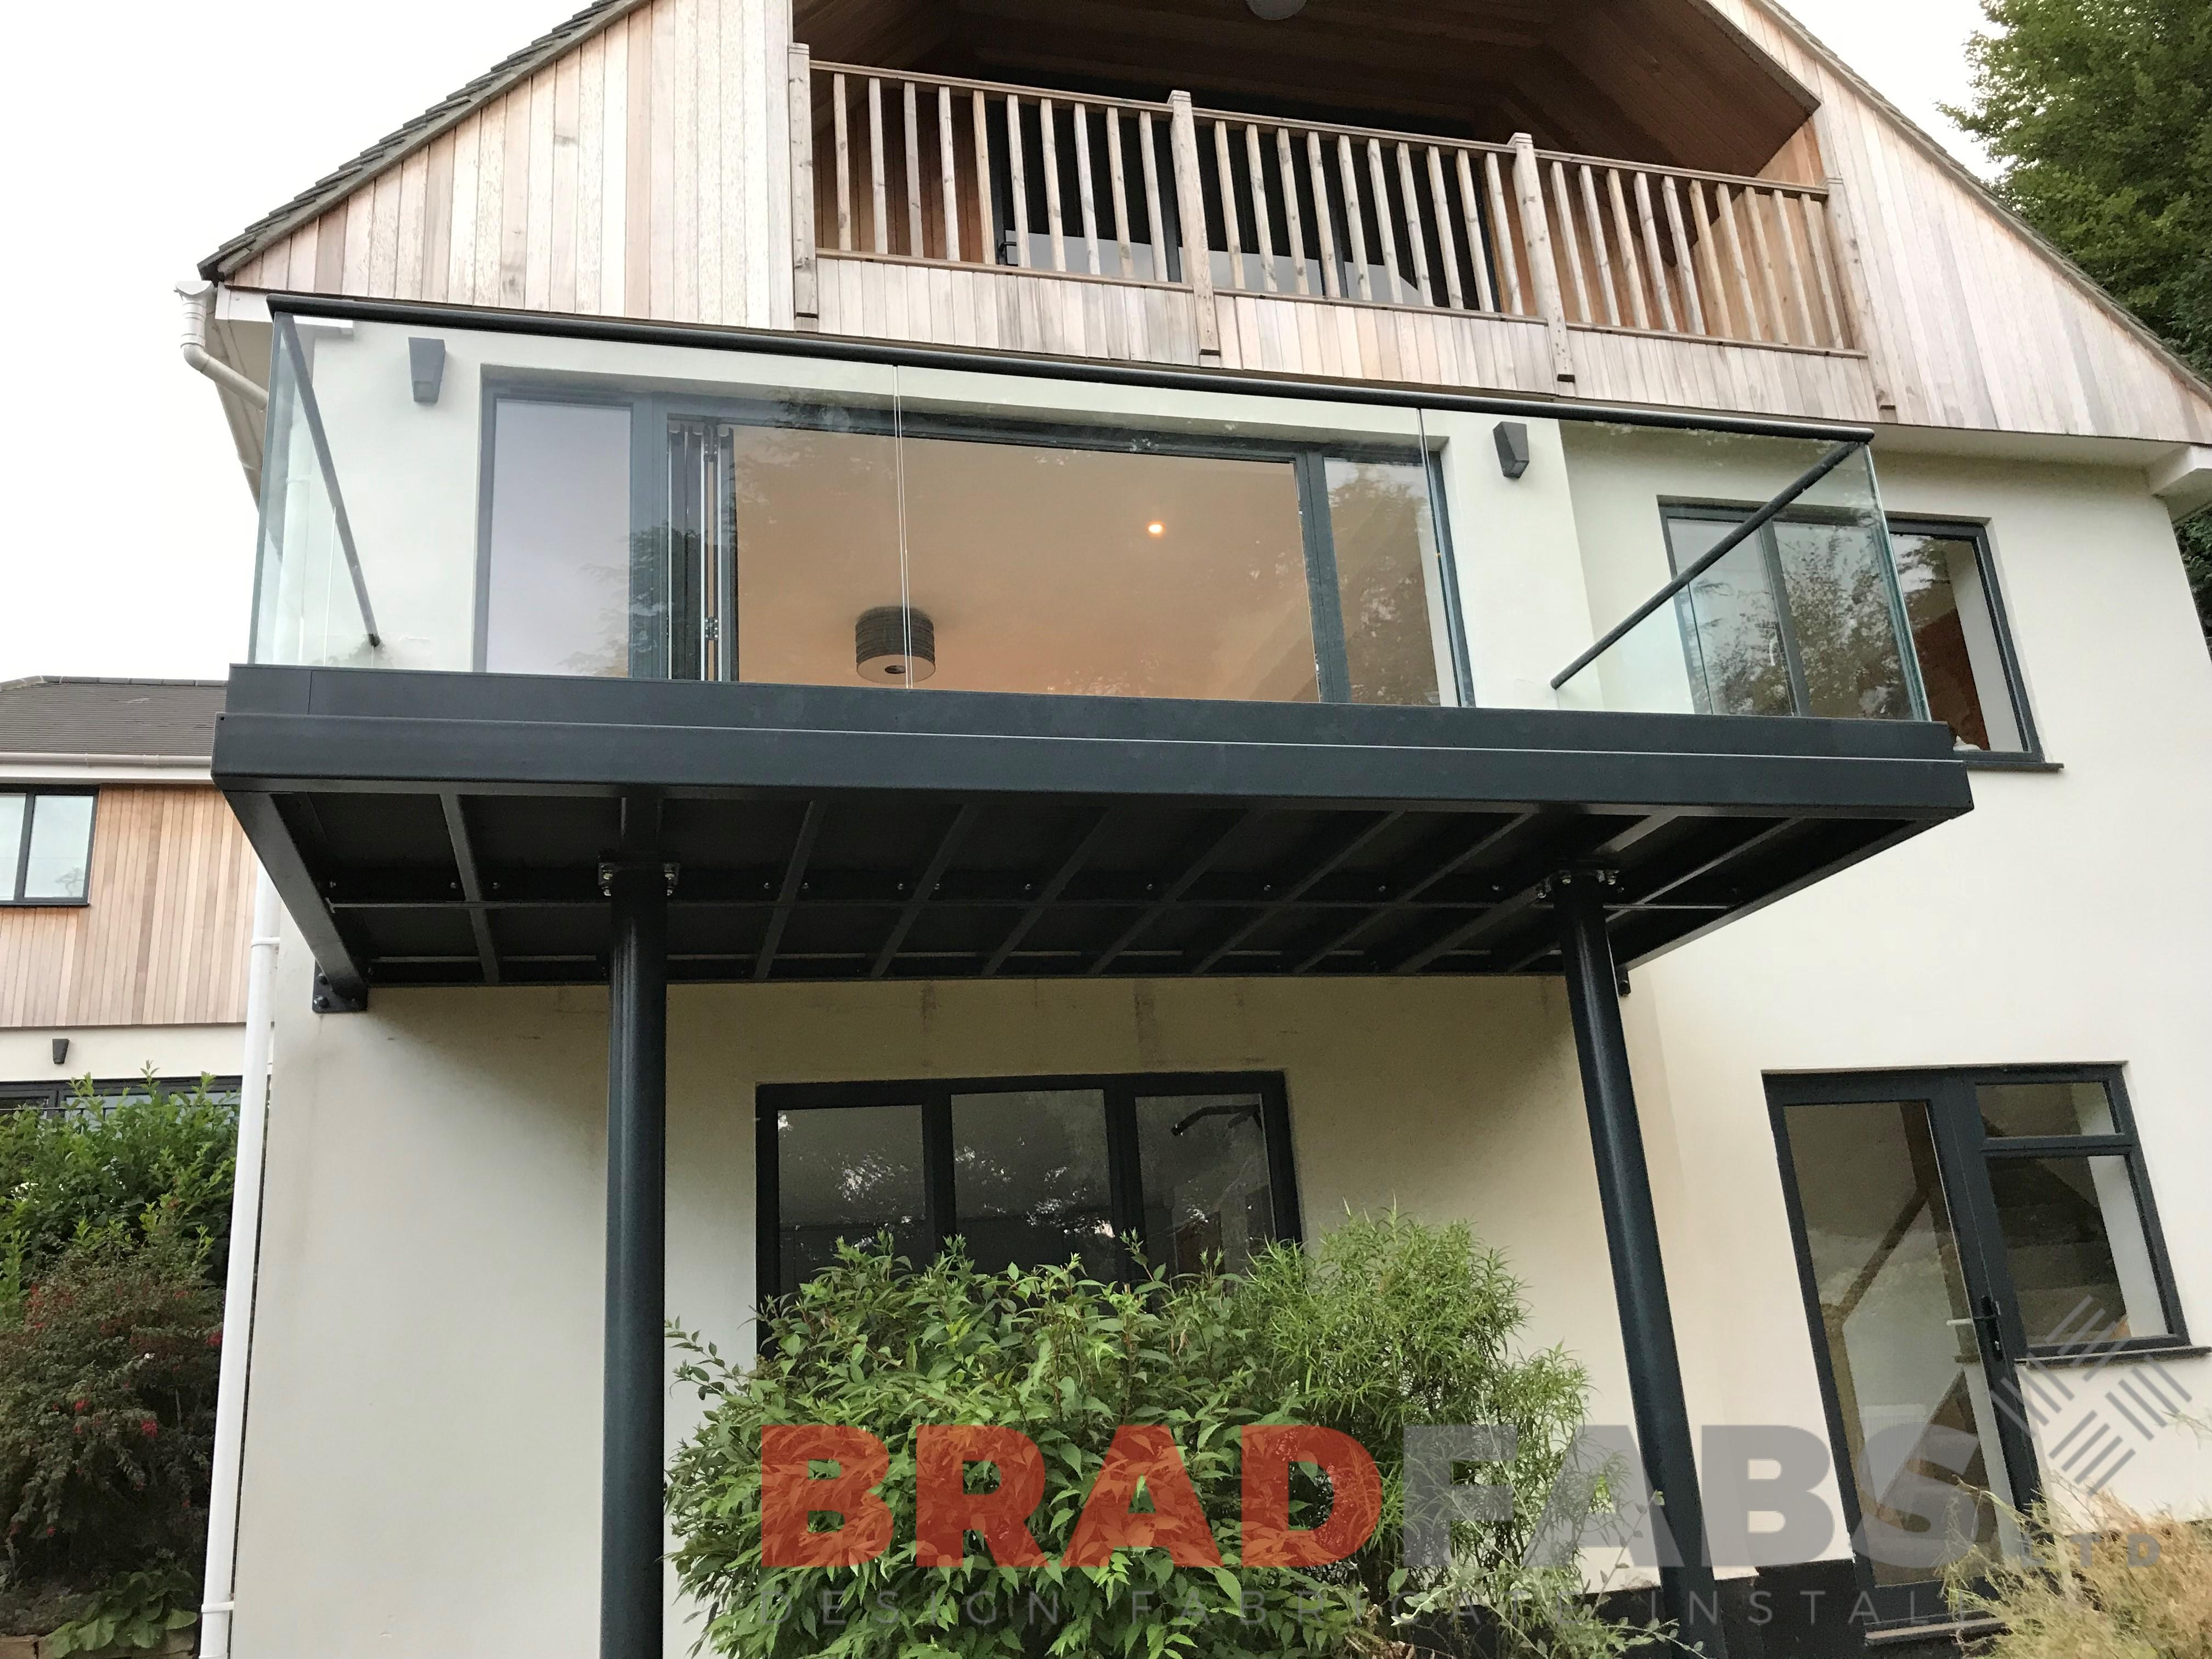 Bespoke designed metal and infinity glass balcony by Bradfabs